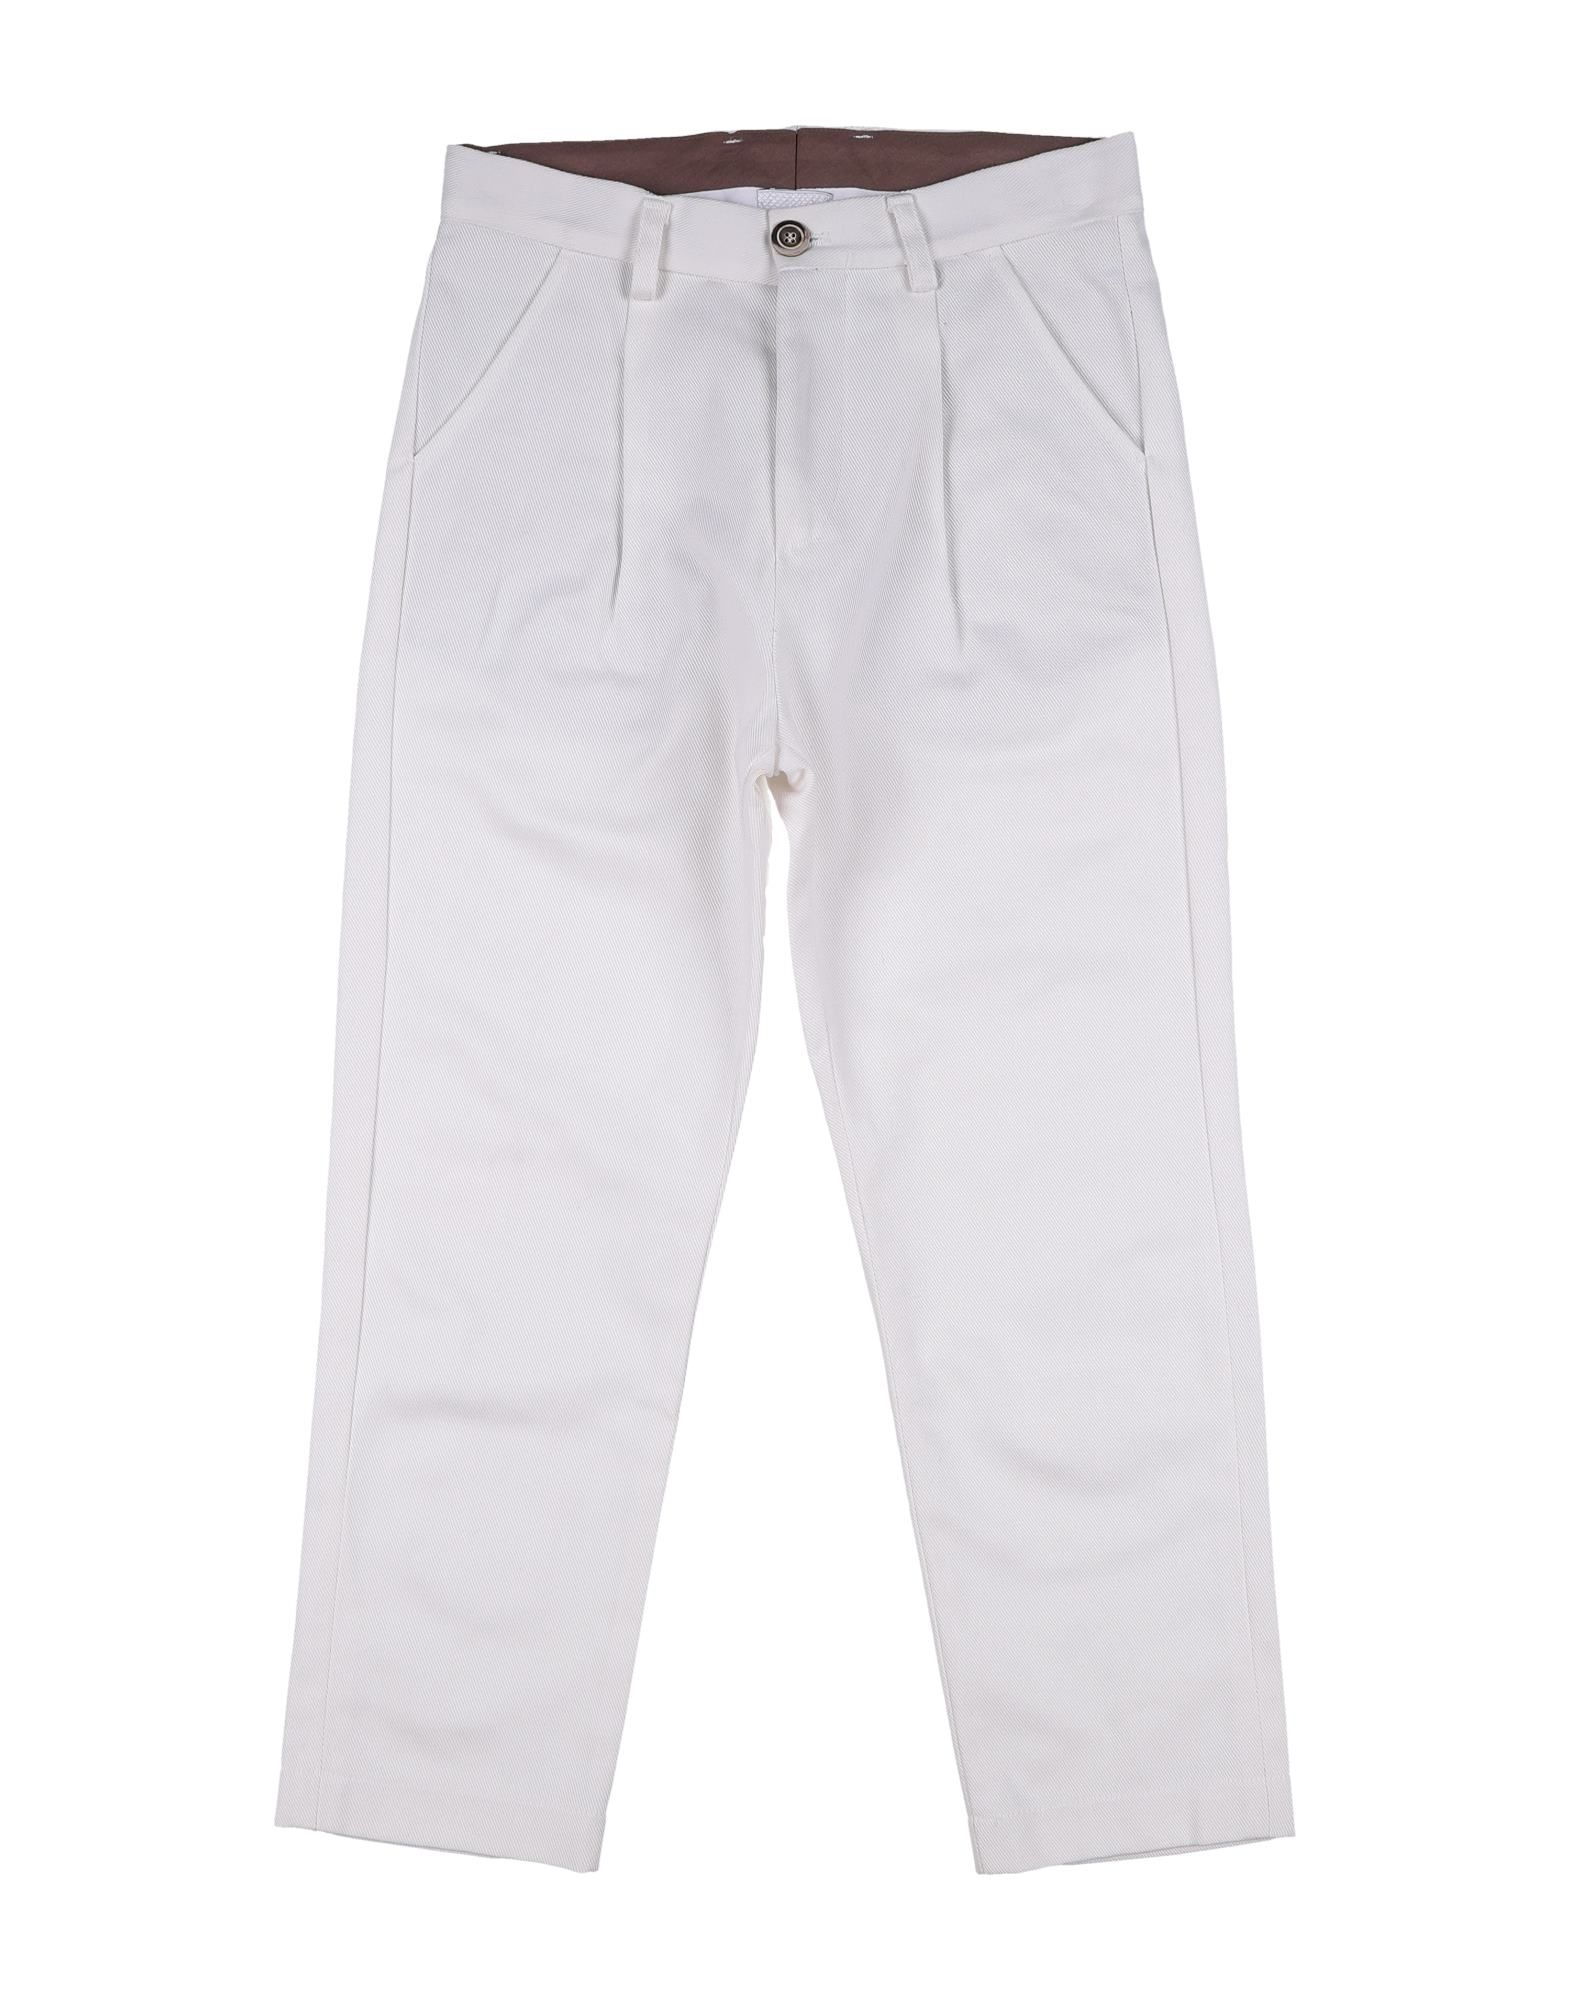 26.7 Twentysixseven Kids' Casual Pants In White